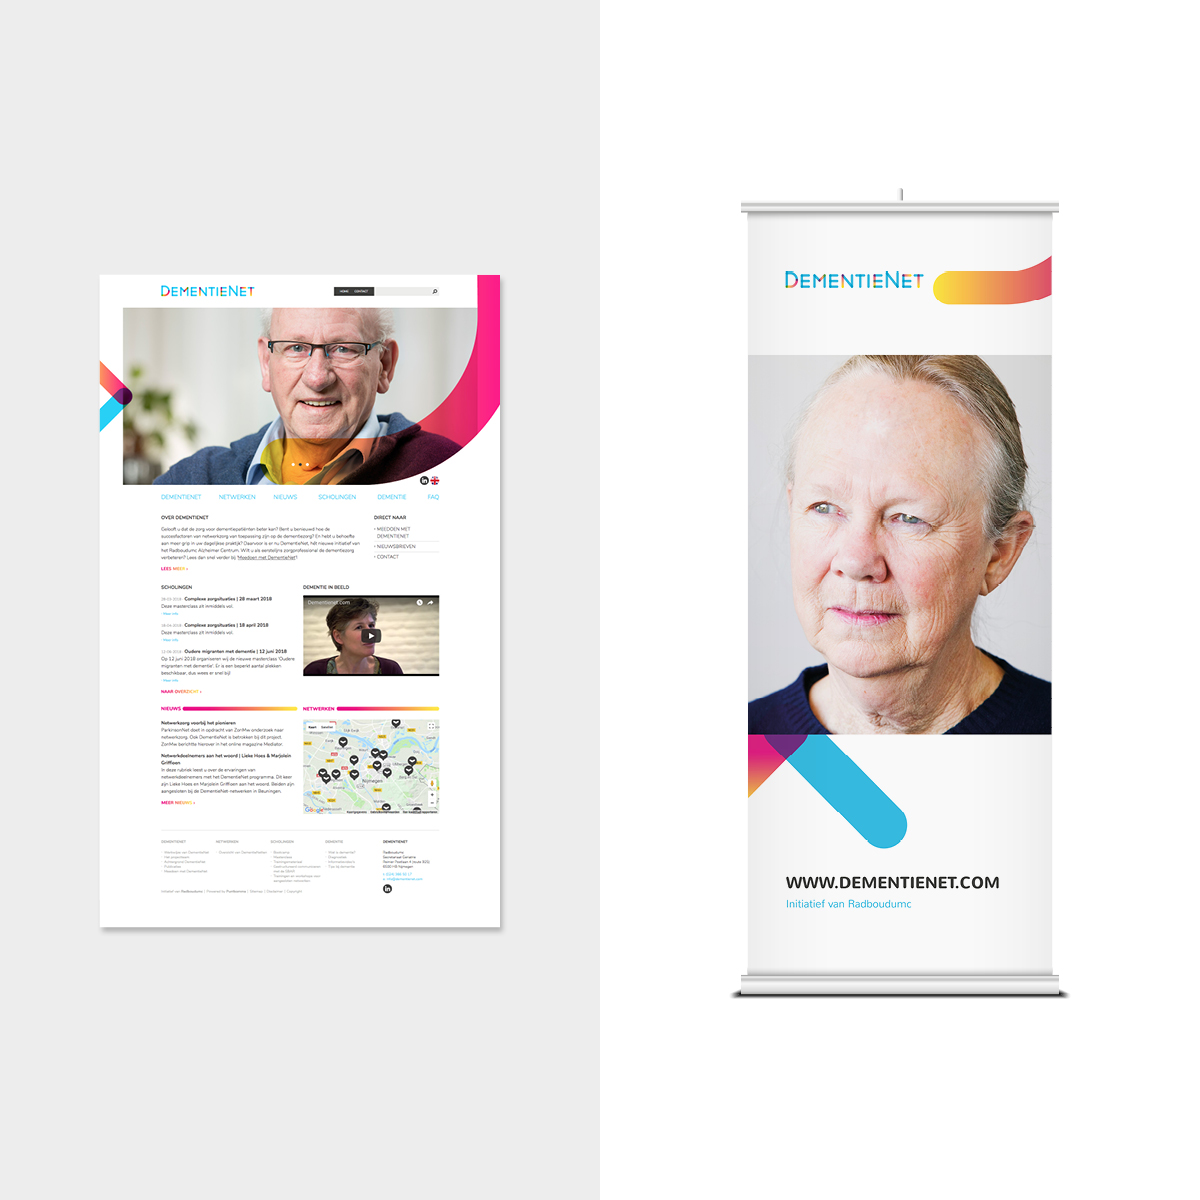 Dementienet | Screens en Roll-up banner | Creative Digital Agency Puntkomma Nijmegen